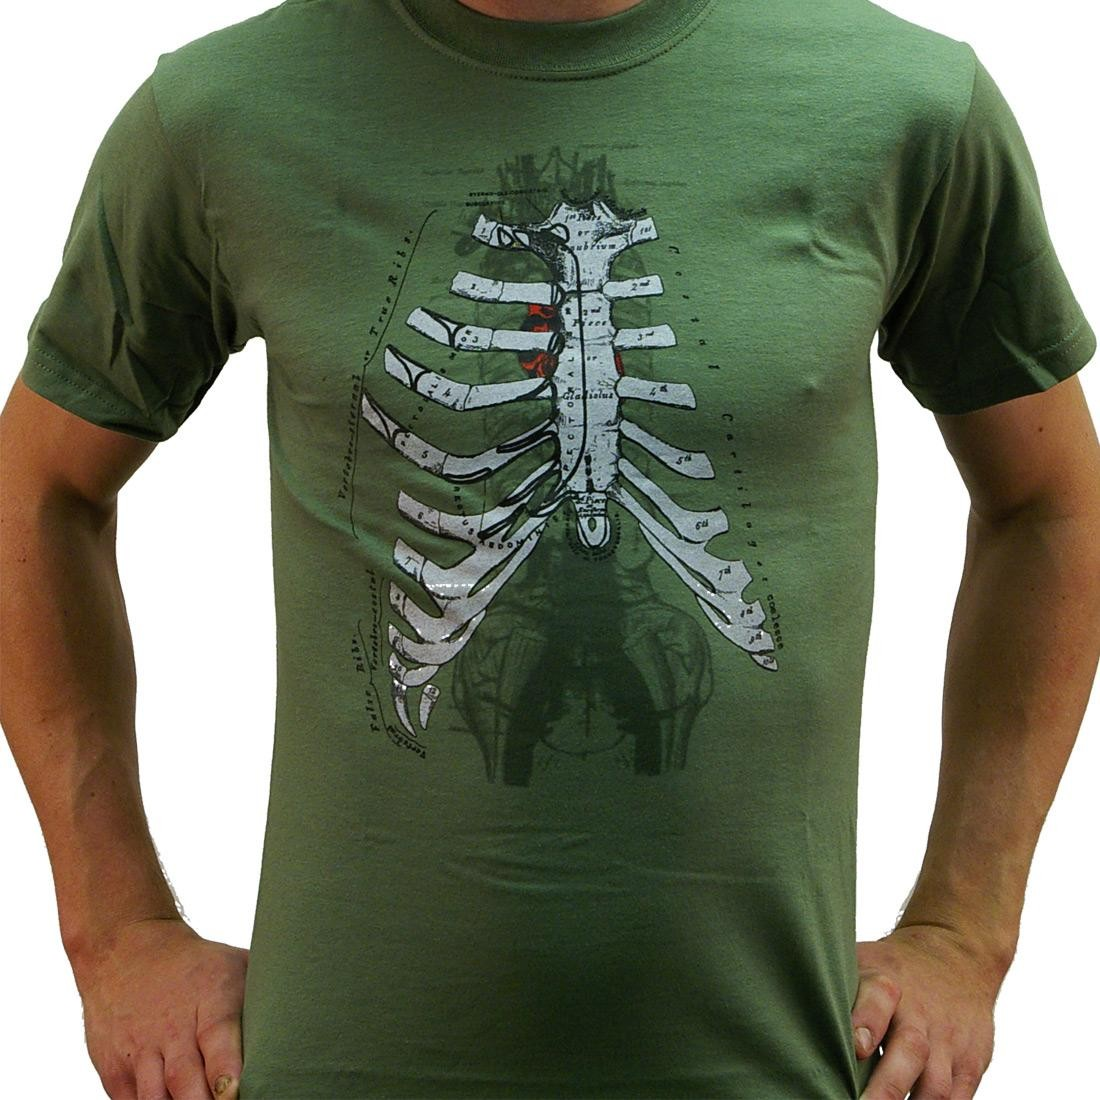 Coalesce: Functioning On Impatience T-Shirt